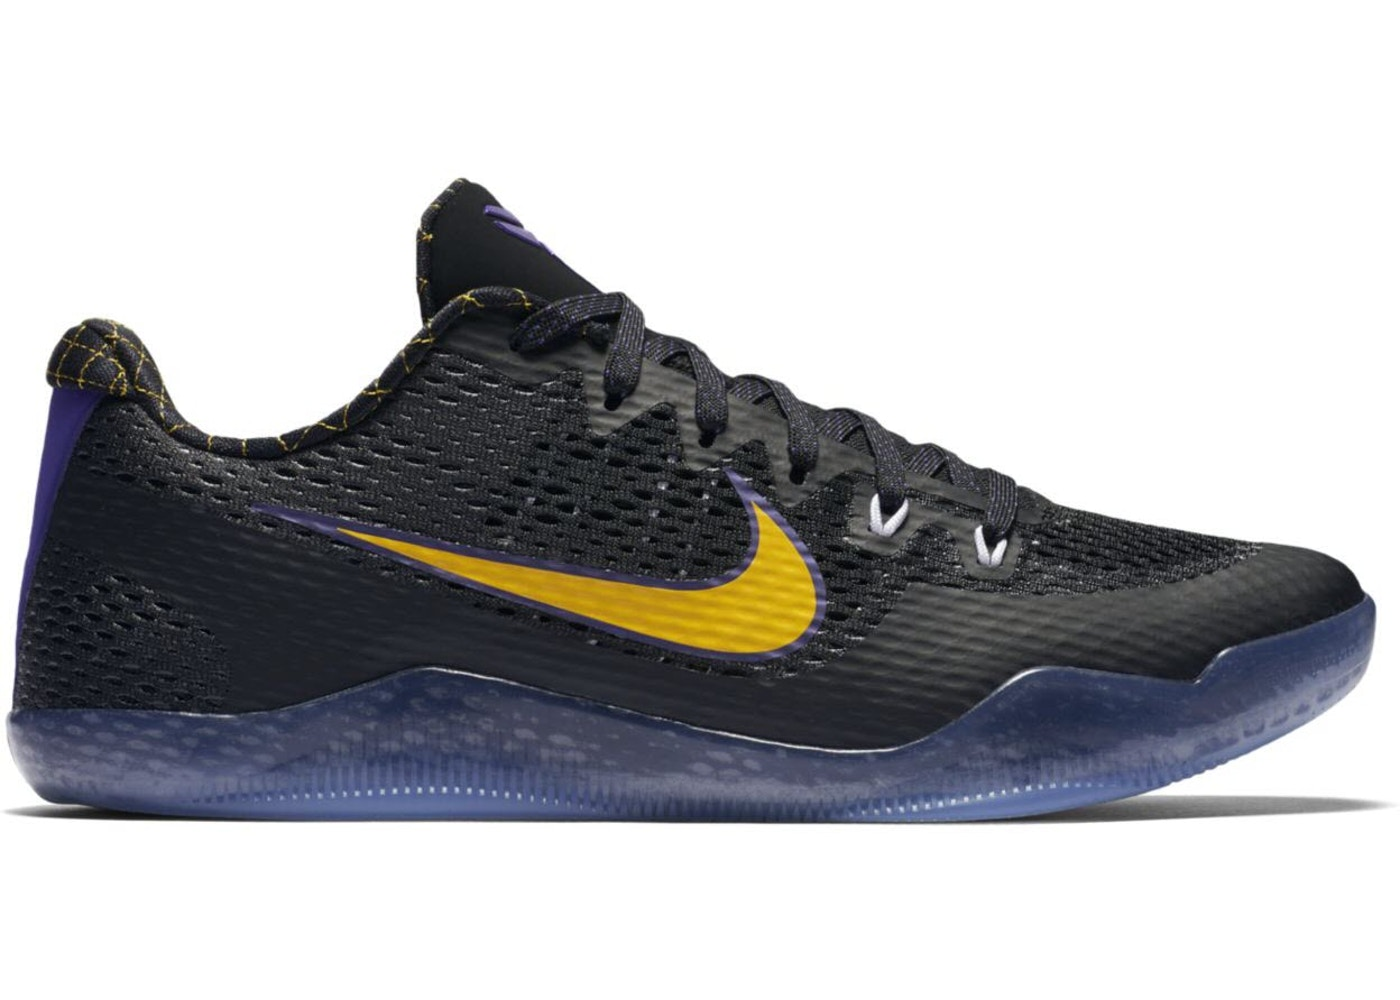 ナイキ NIKE コービー スニーカーKOBE 11 CARPE DIEM BLACK WHITECOURT PURPLEUNIVERSITY GOLDメンズ5R4AL3j